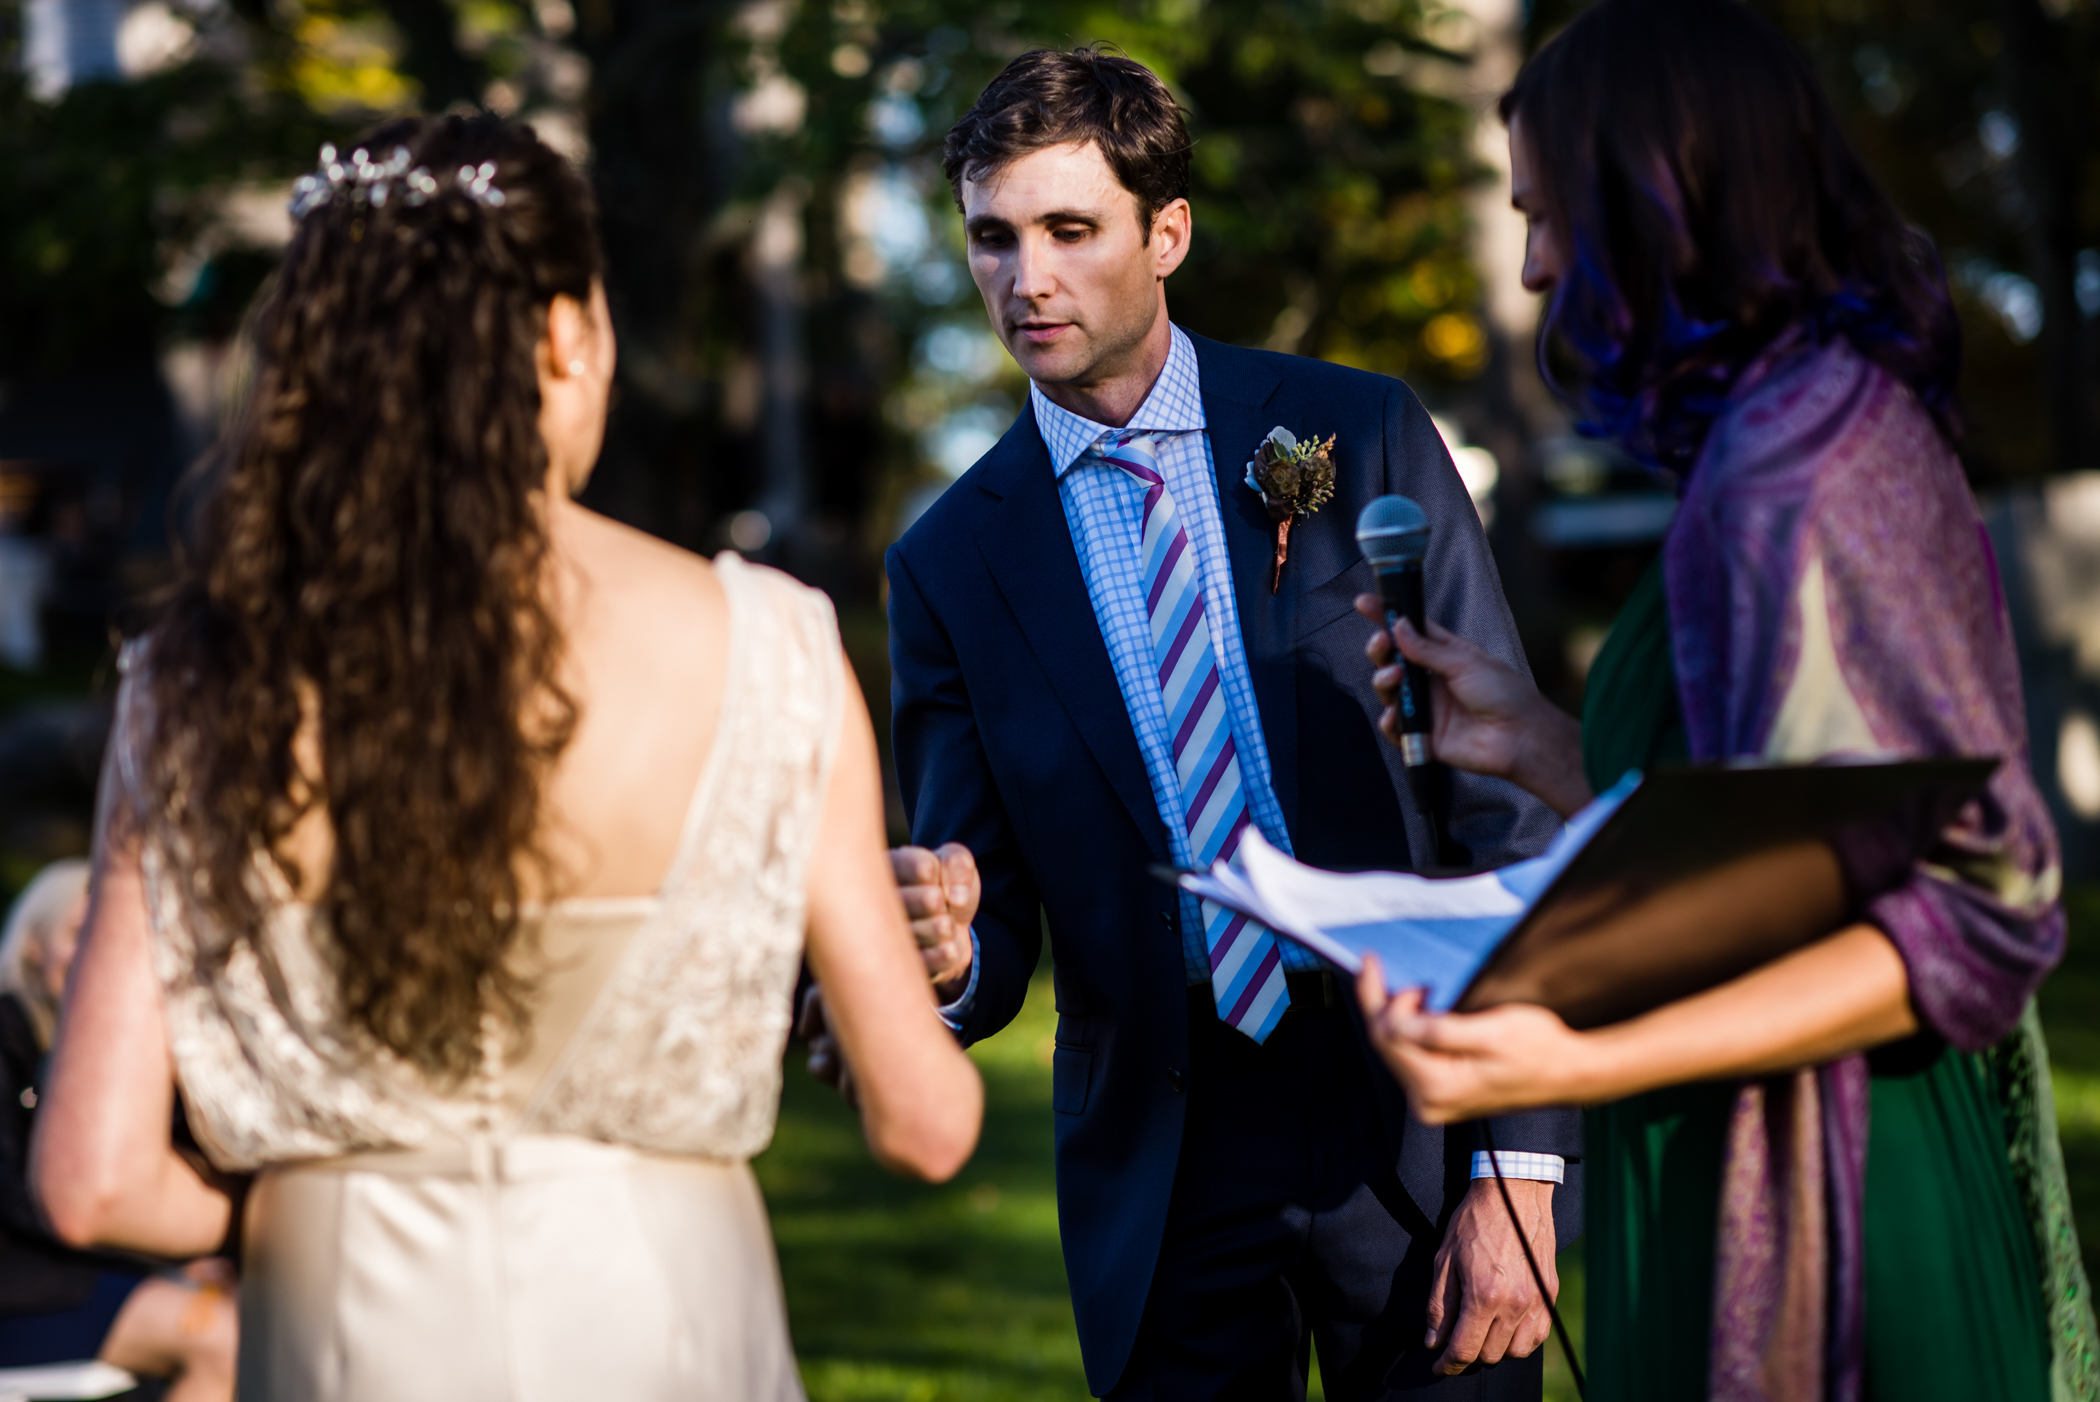 Stefy Hilmer Photography -Rock paper siccors at wedding ceremony who reads vows first.jpg